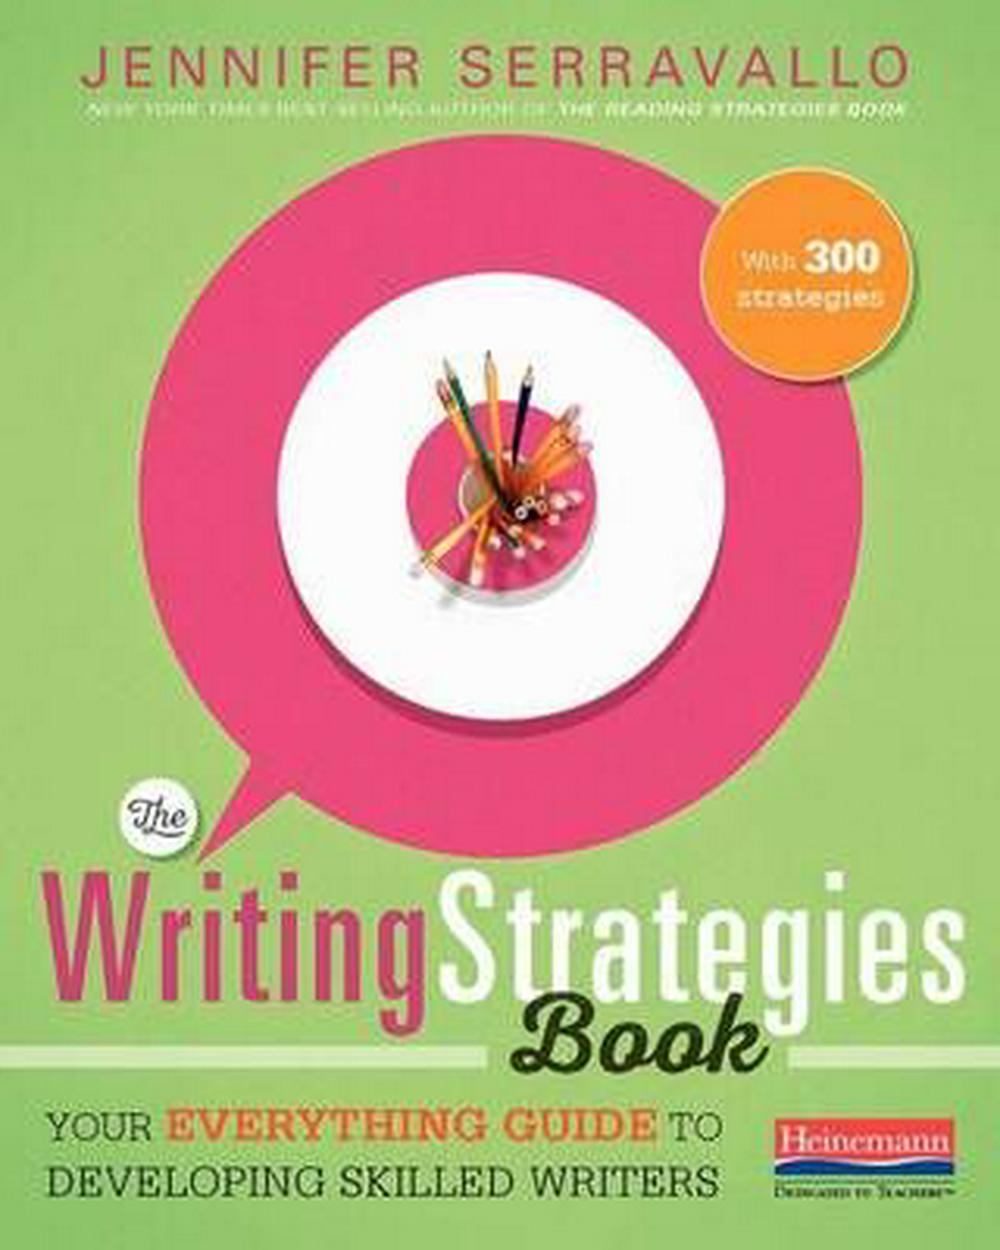 The Writing Strategies Book: Your Everything Guide to Developing Skilled Writers by Jennifer Serravallo, ISBN: 9780325078229